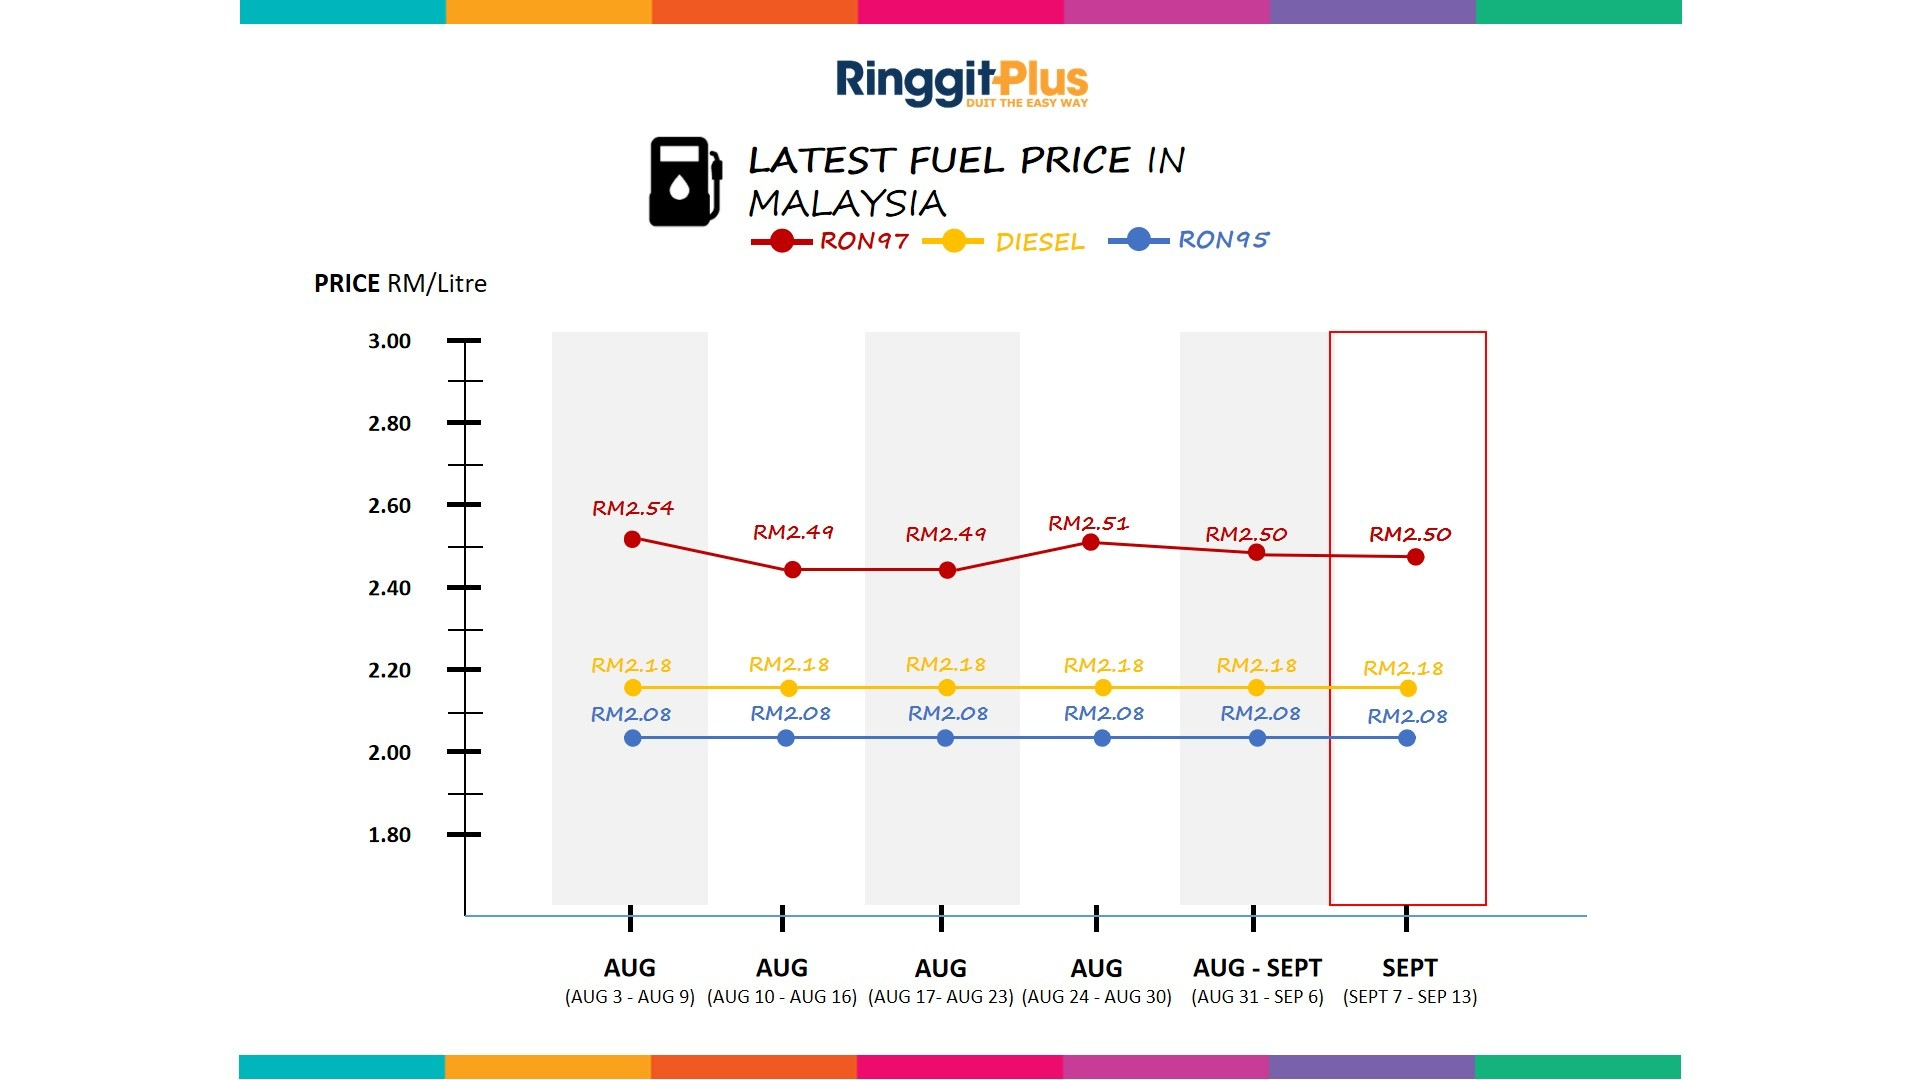 Petrol Price Malaysia Live Updates (RON95, RON97 & Diesel)